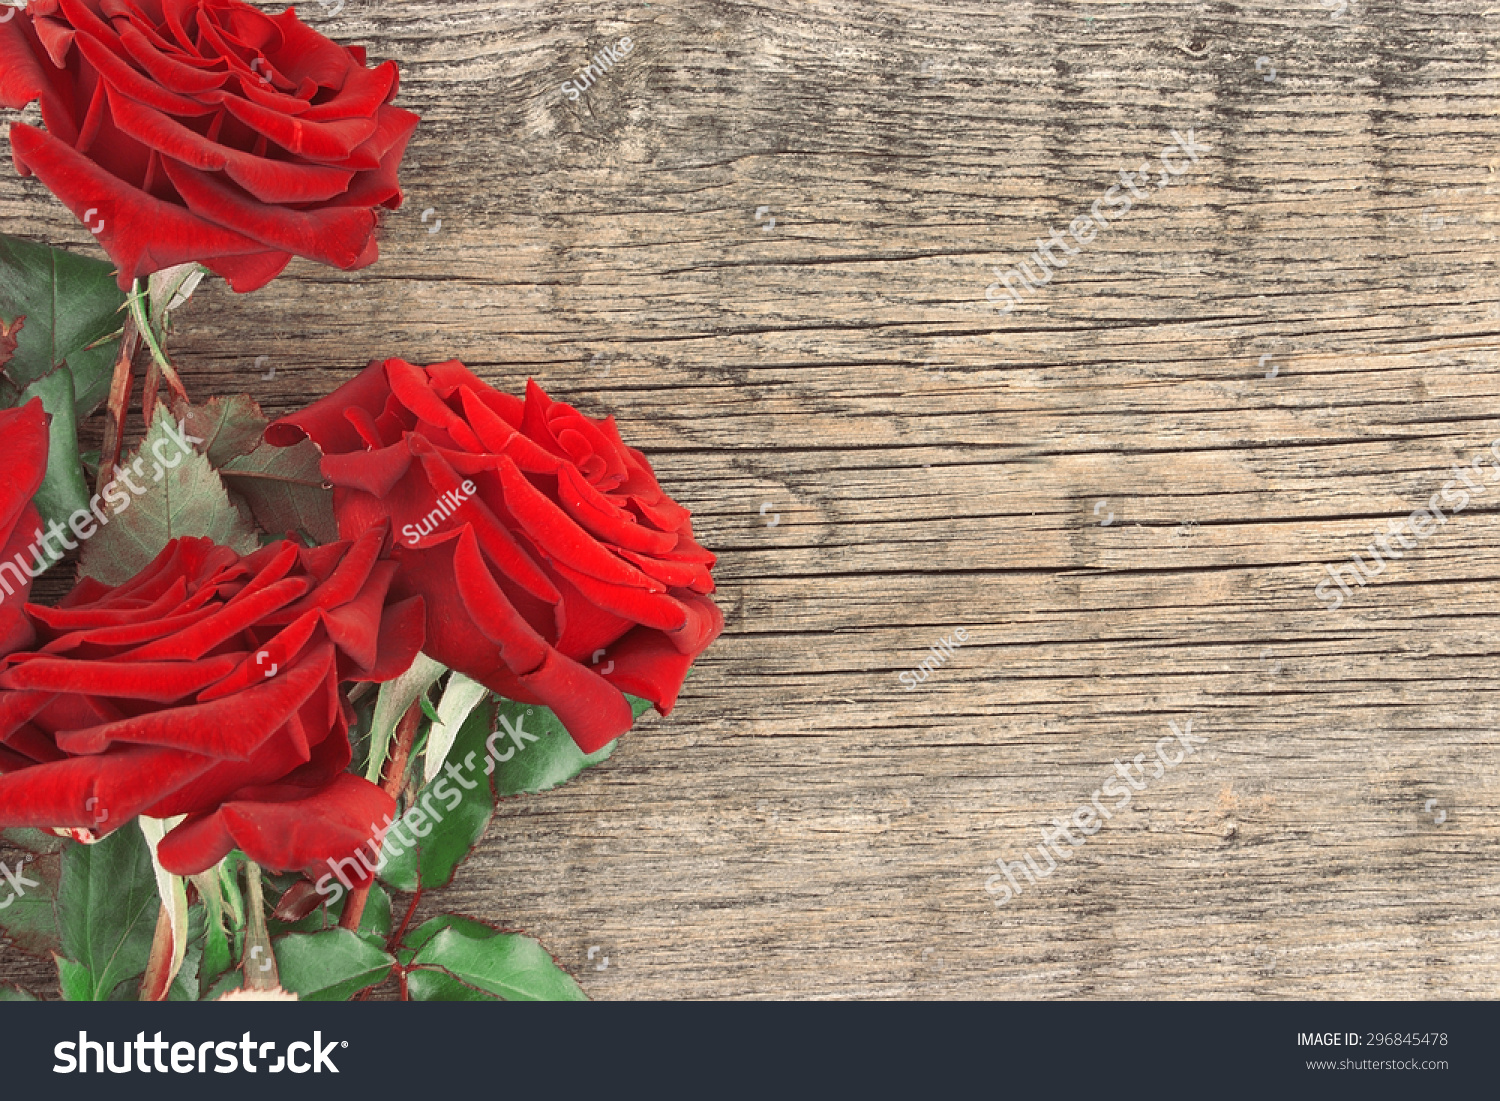 Bouquet Red Roses On Rustic Wooden Stock Photo 296845478 Shutterstock